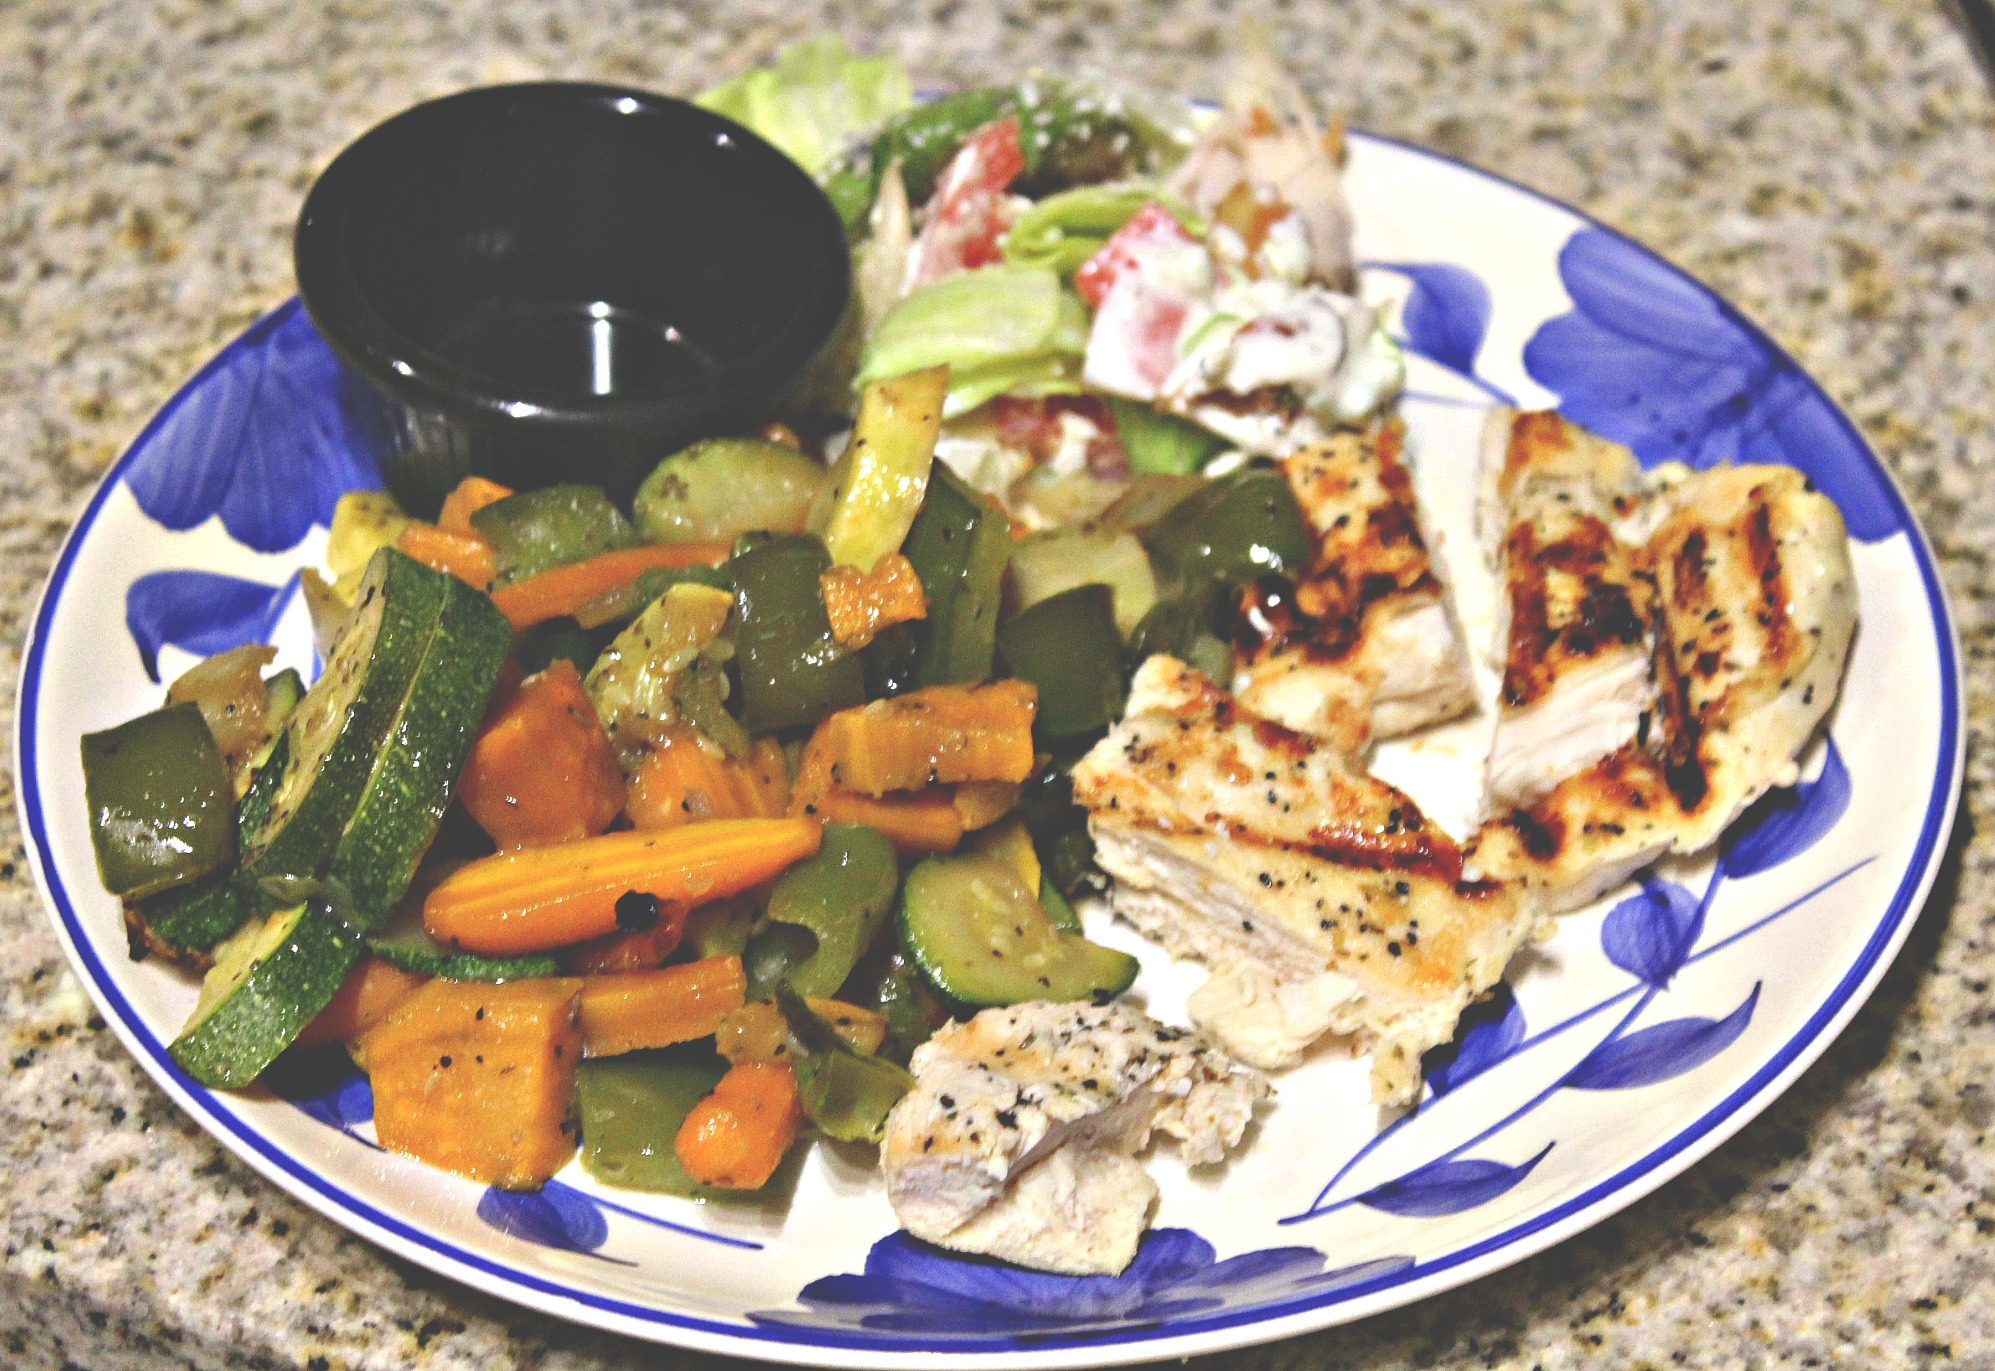 Grilled Chicken, Roasted Vegetables & Healthy Dinner